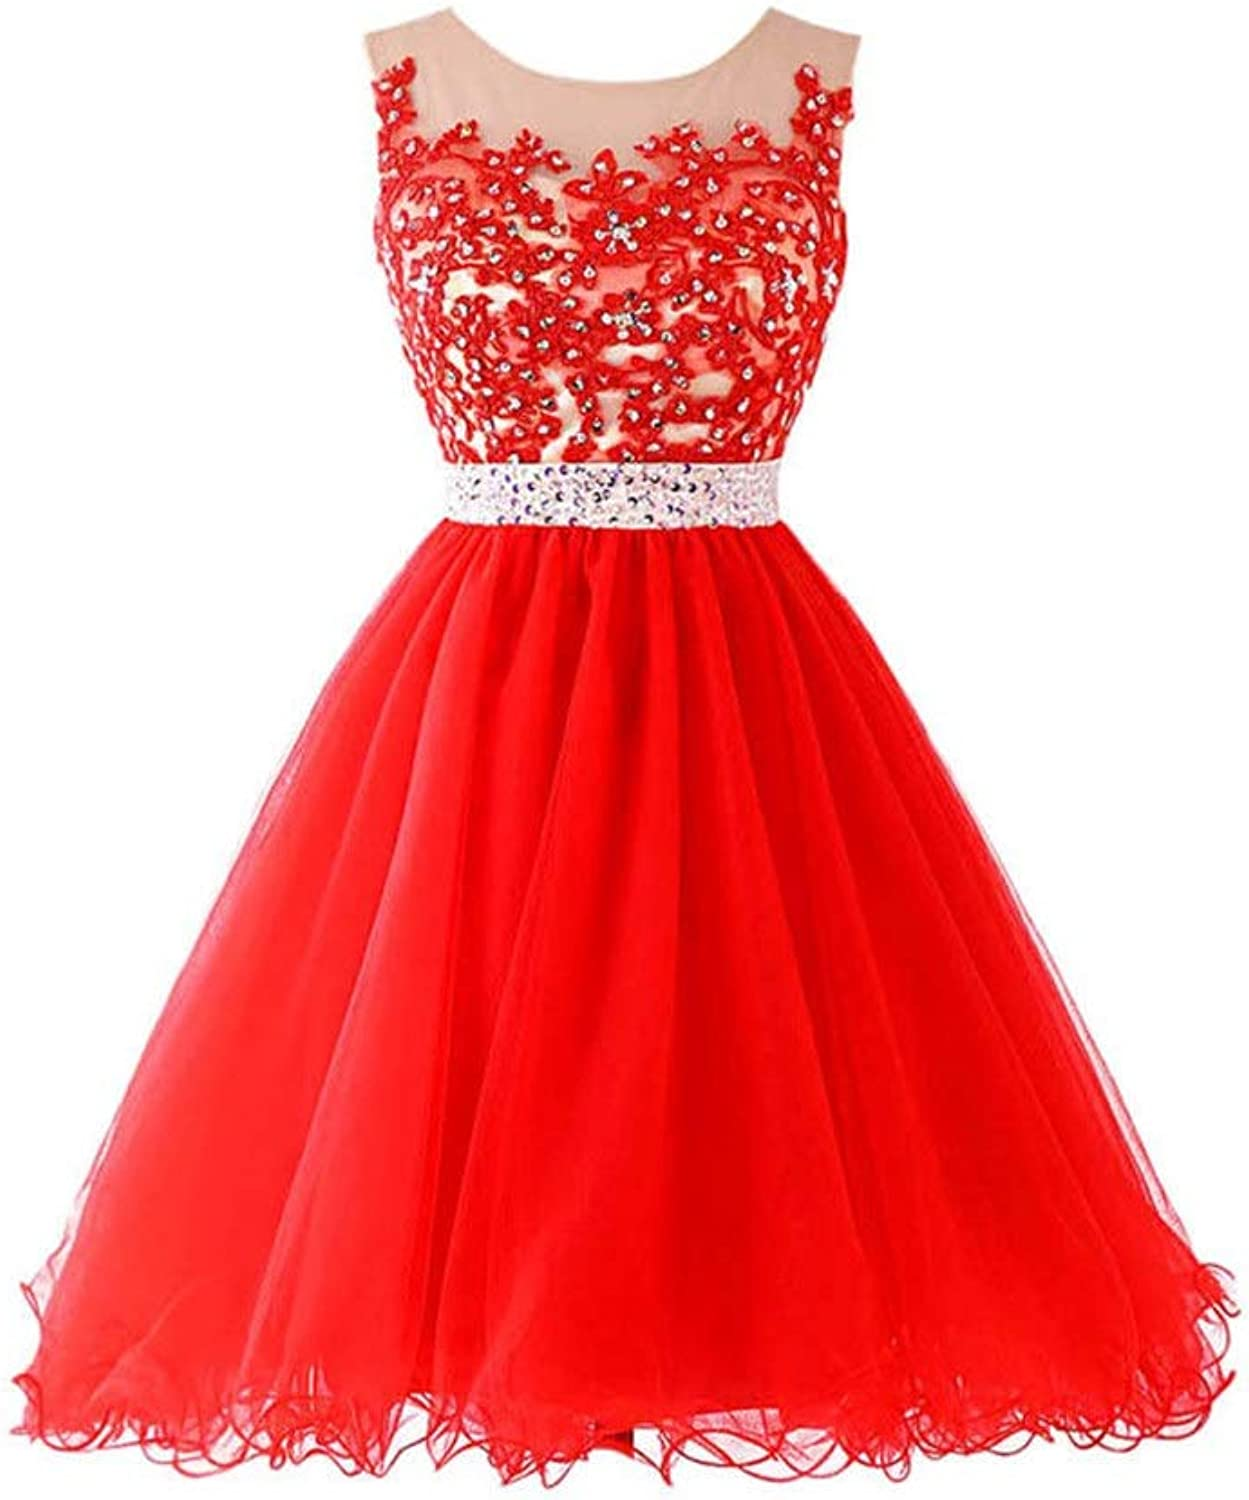 Women's Wedding Dress Women Bridesmaid Wedding Dress Tutu Tulle Short Prom Dress Homecoming Gowns Sleeveless Beaded Appliques Cocktail Party Dress Formal Evening Dress Red Ball Gowns Evening Dress